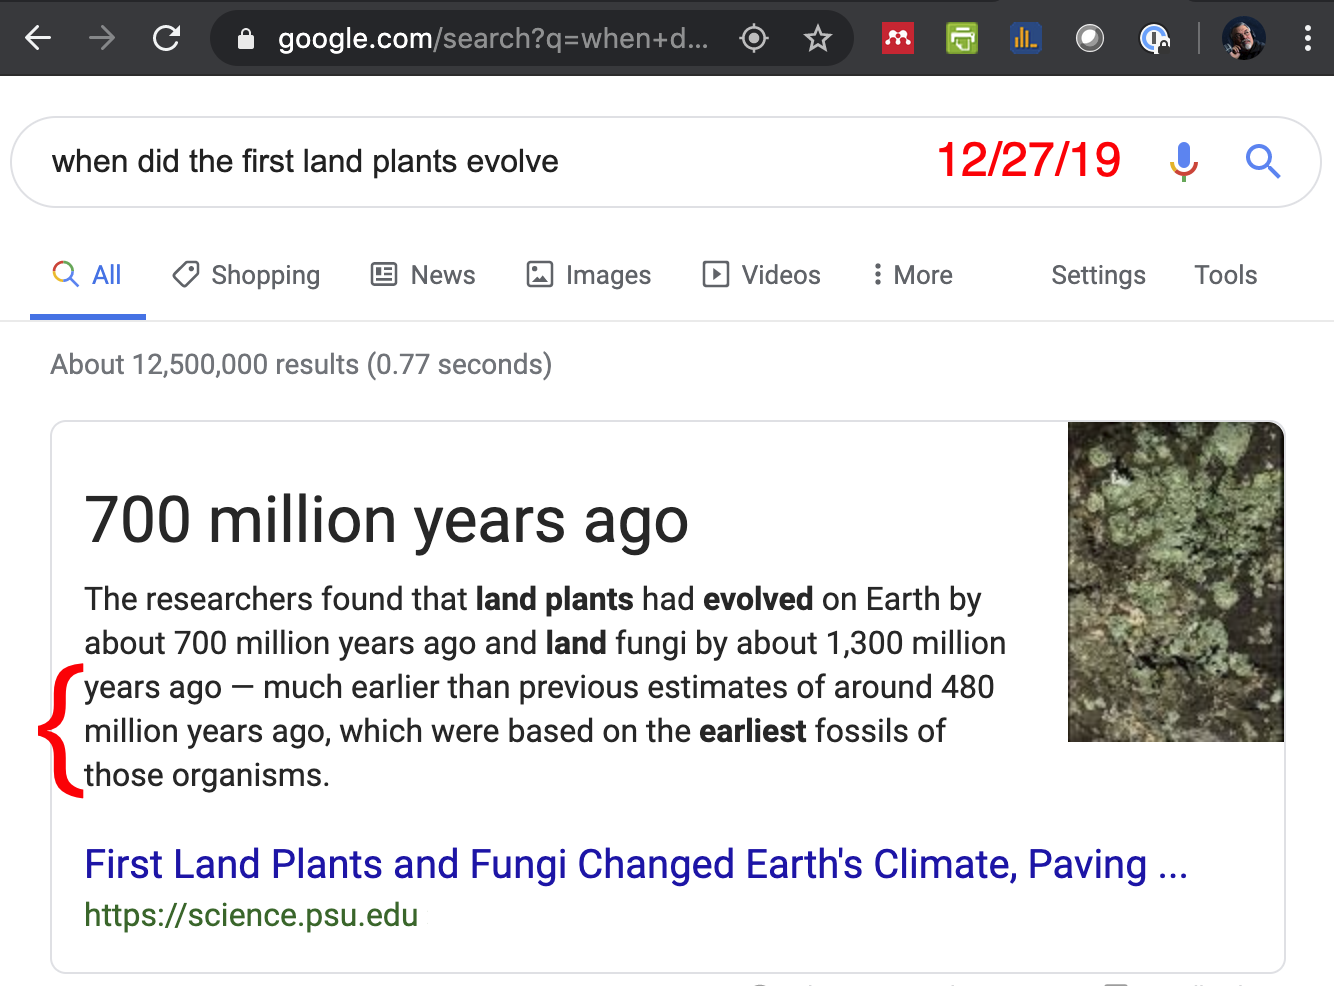 Land plants appear hundreds of millions of years before expected